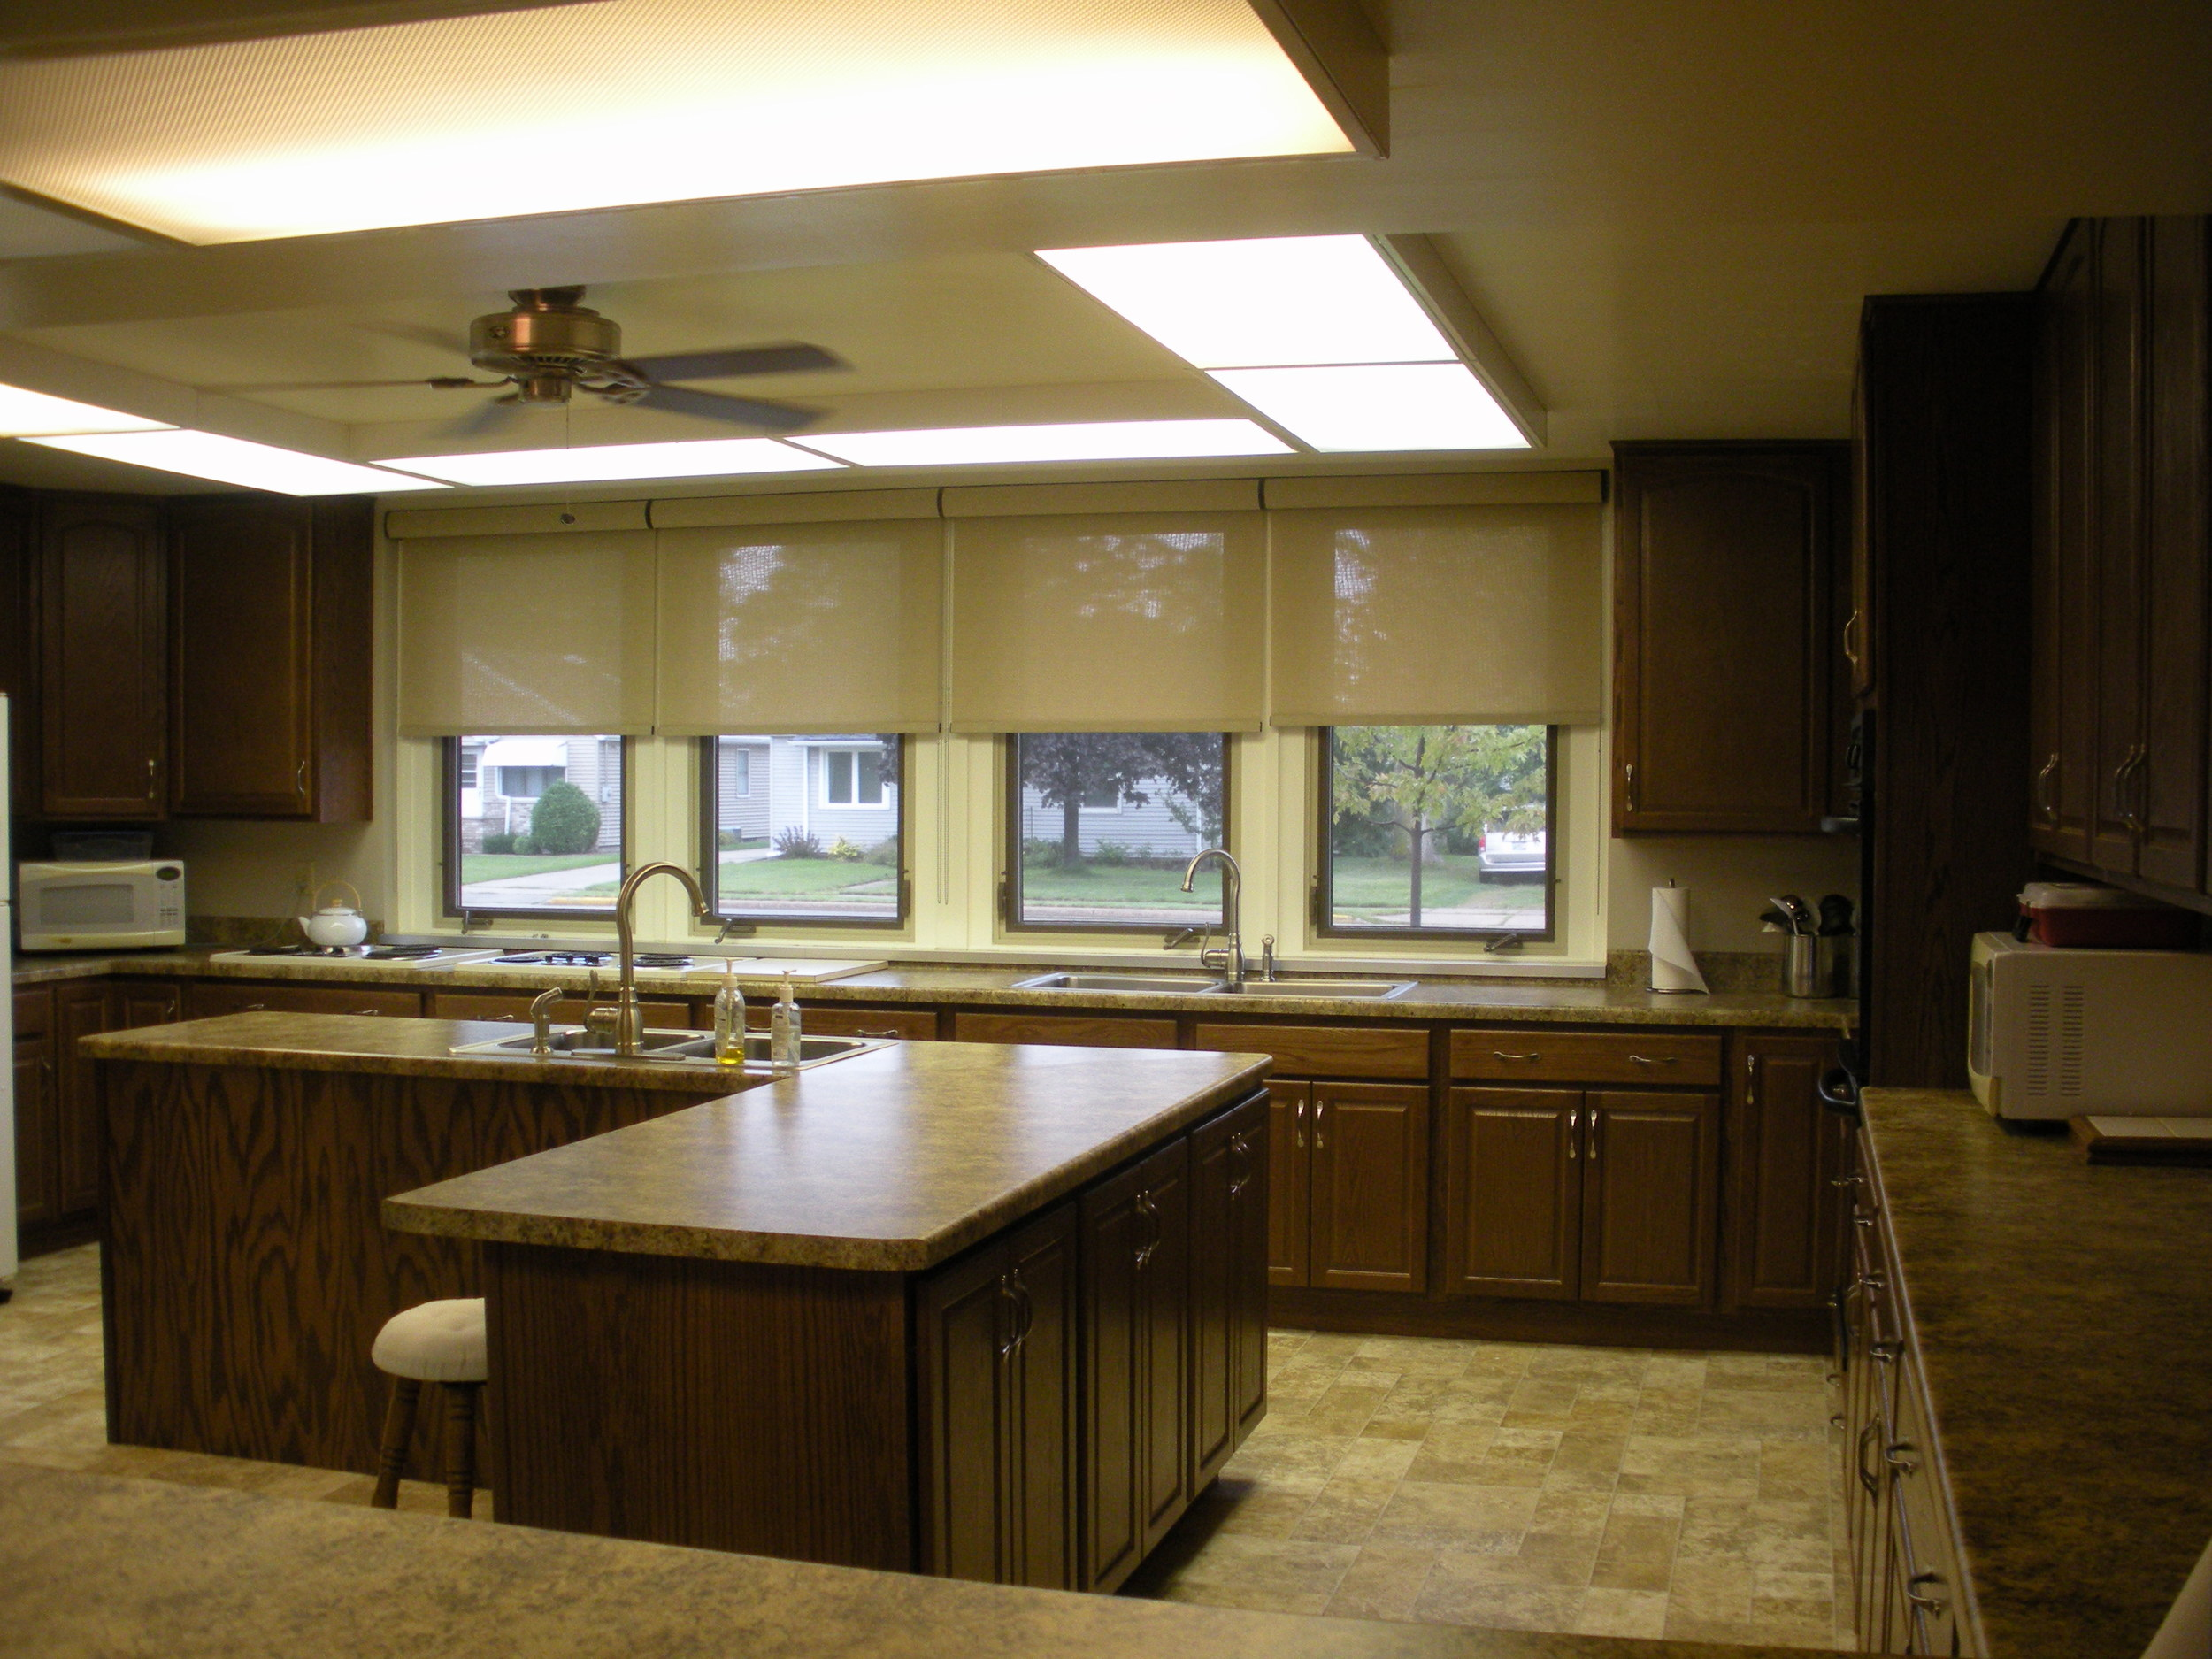 Renovation of Kitchen 2013 013.jpg